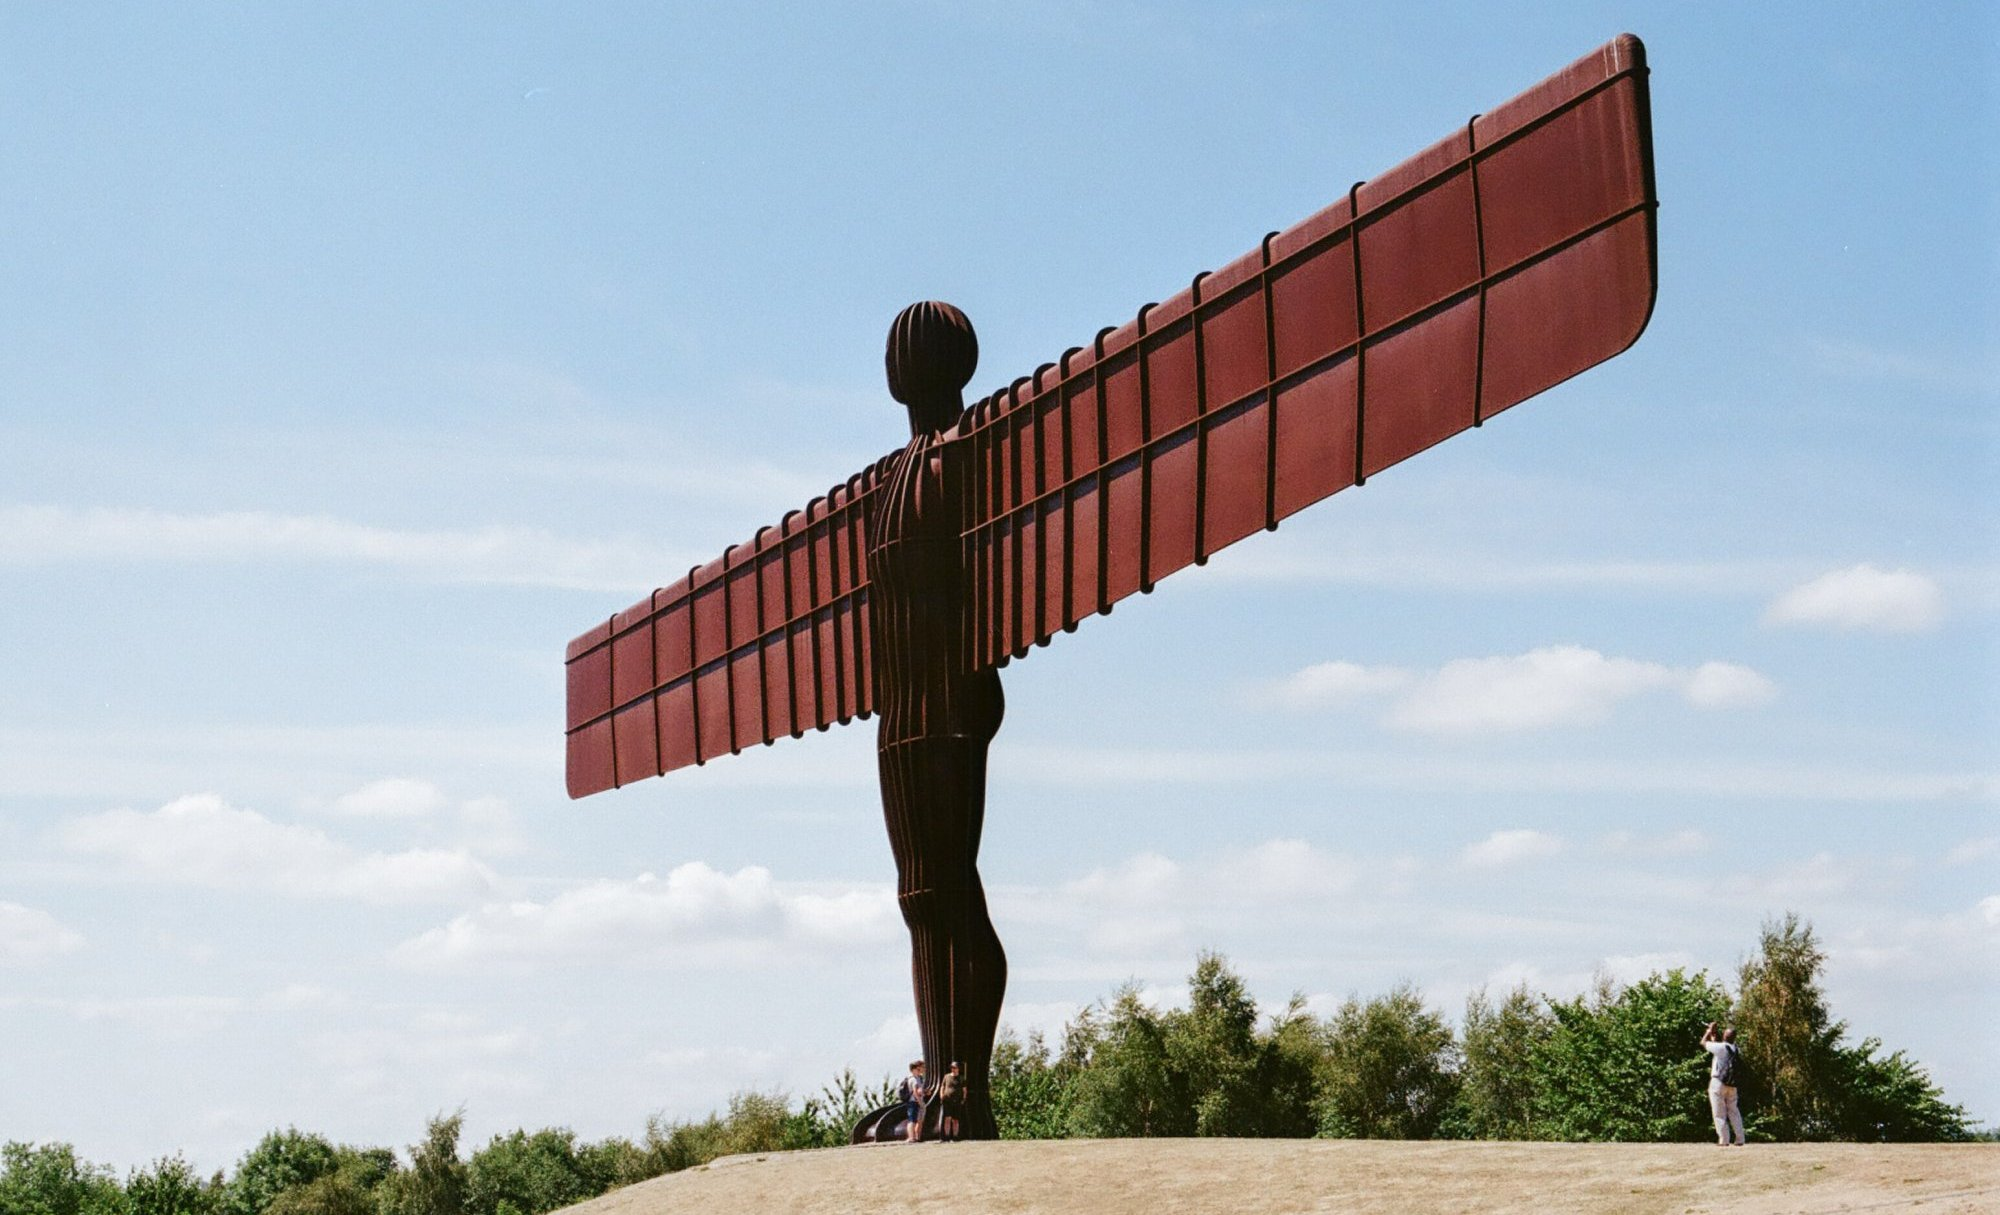 The Angel of the North in Gateshead Photo by Anthony Winter on Unsplash